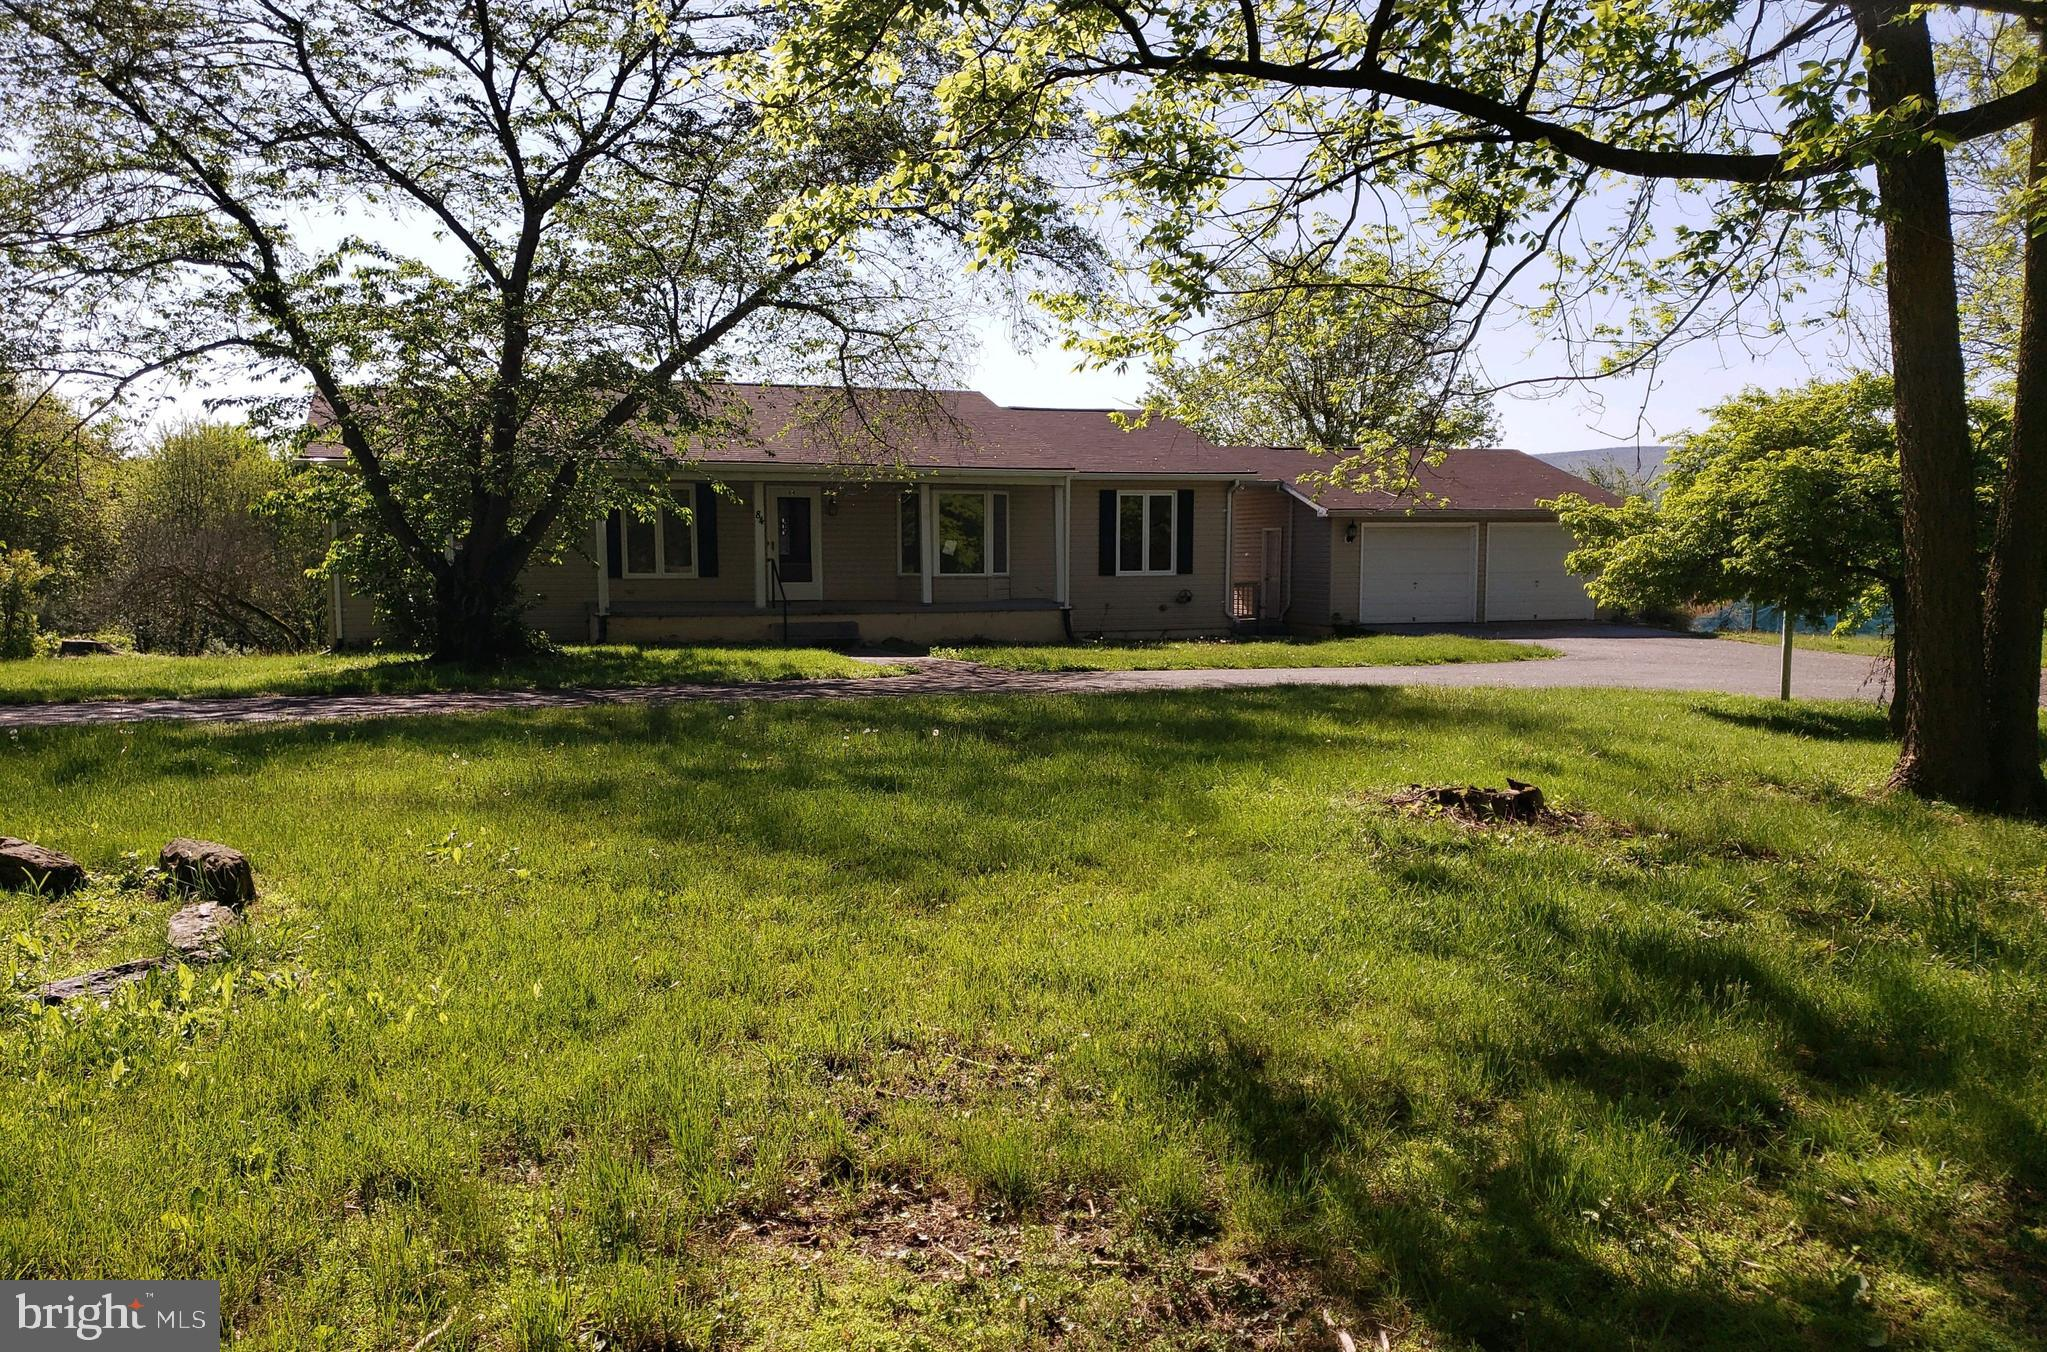 Just off the main road for easy commute, this Ranch style home sits on approx. 1.7+/- Ac lot and features a rear deck, 3BR, 2FB, kit-dining combo, full unfinished basement and large detached garage with built in shelving for extra storage.